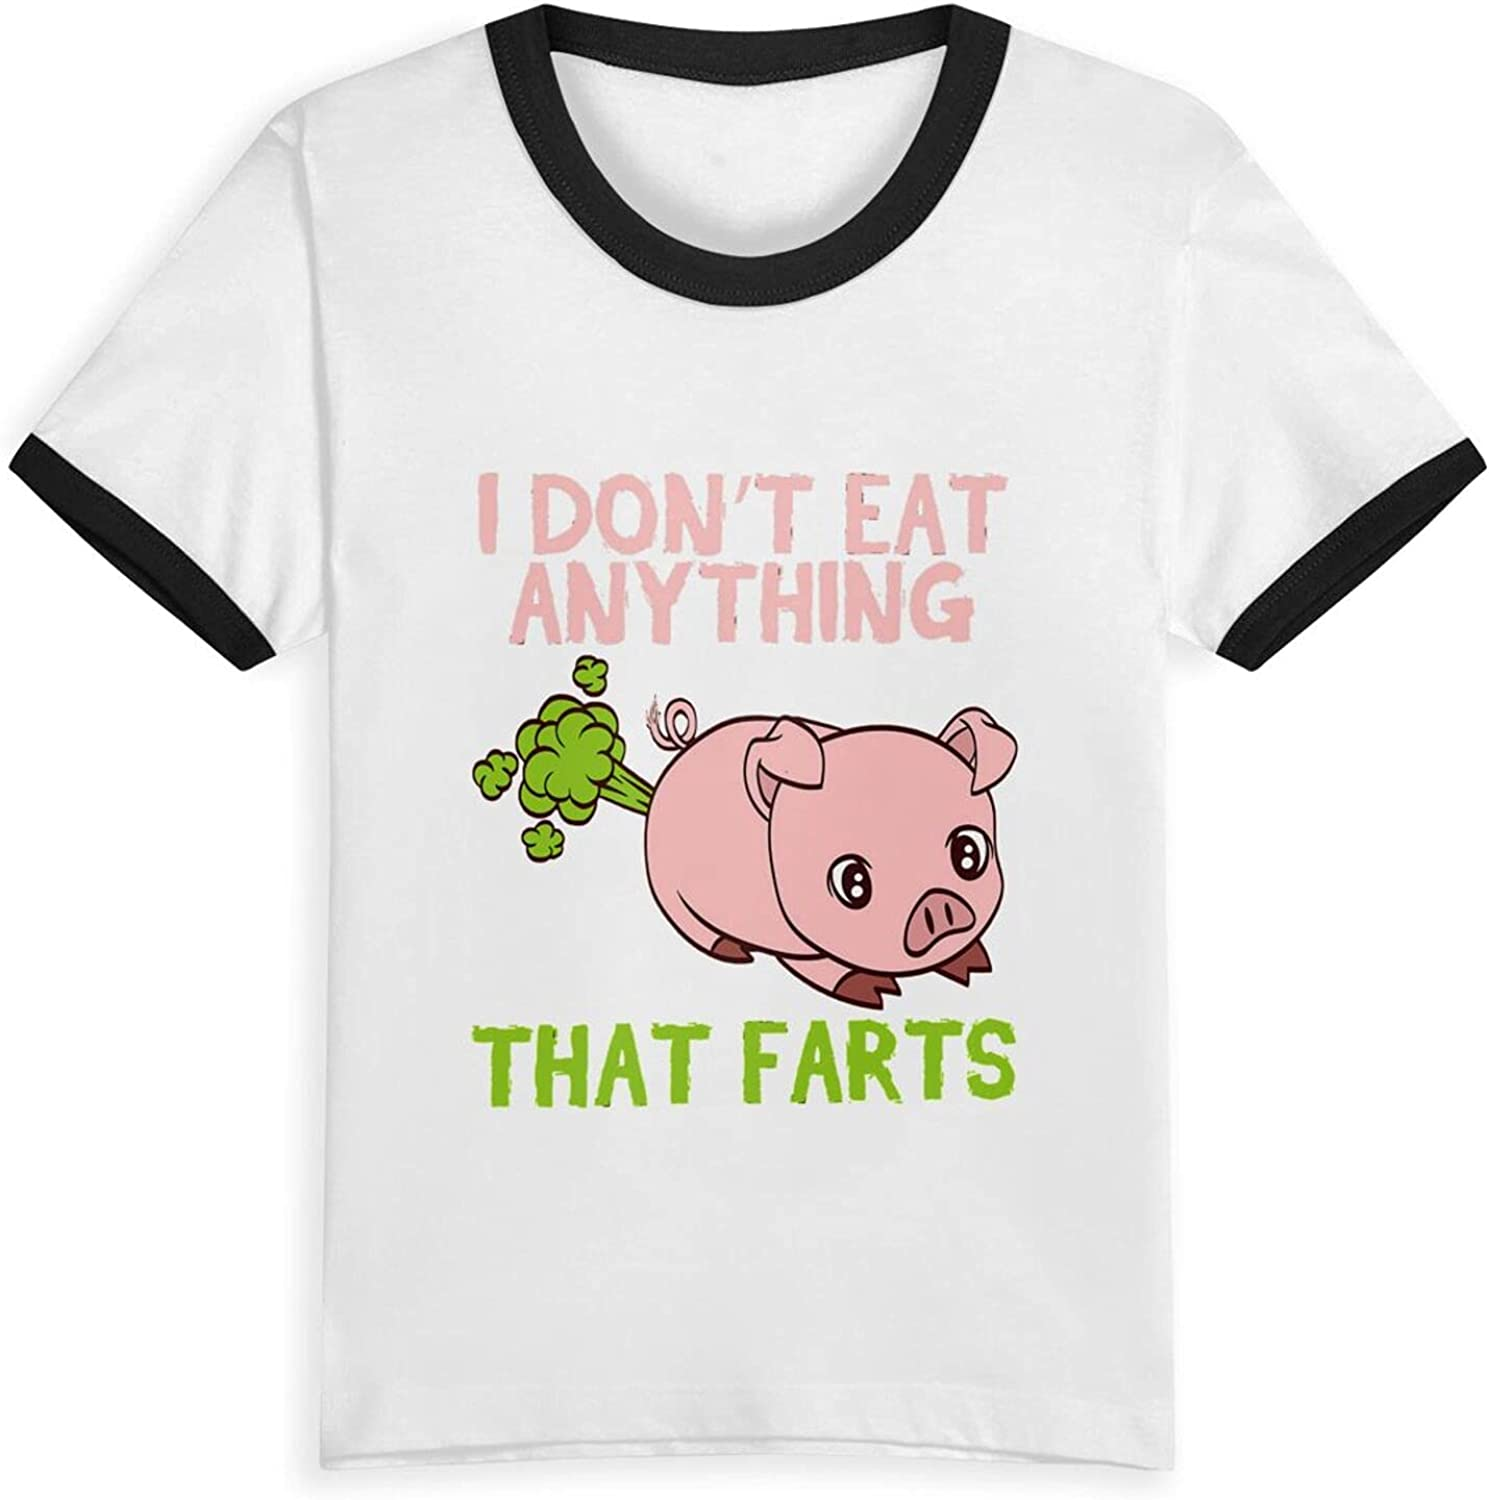 Funny Pig I Dont Eat Anything That Farts T-Shirts Novelty for Kids Tees with Cool Designs